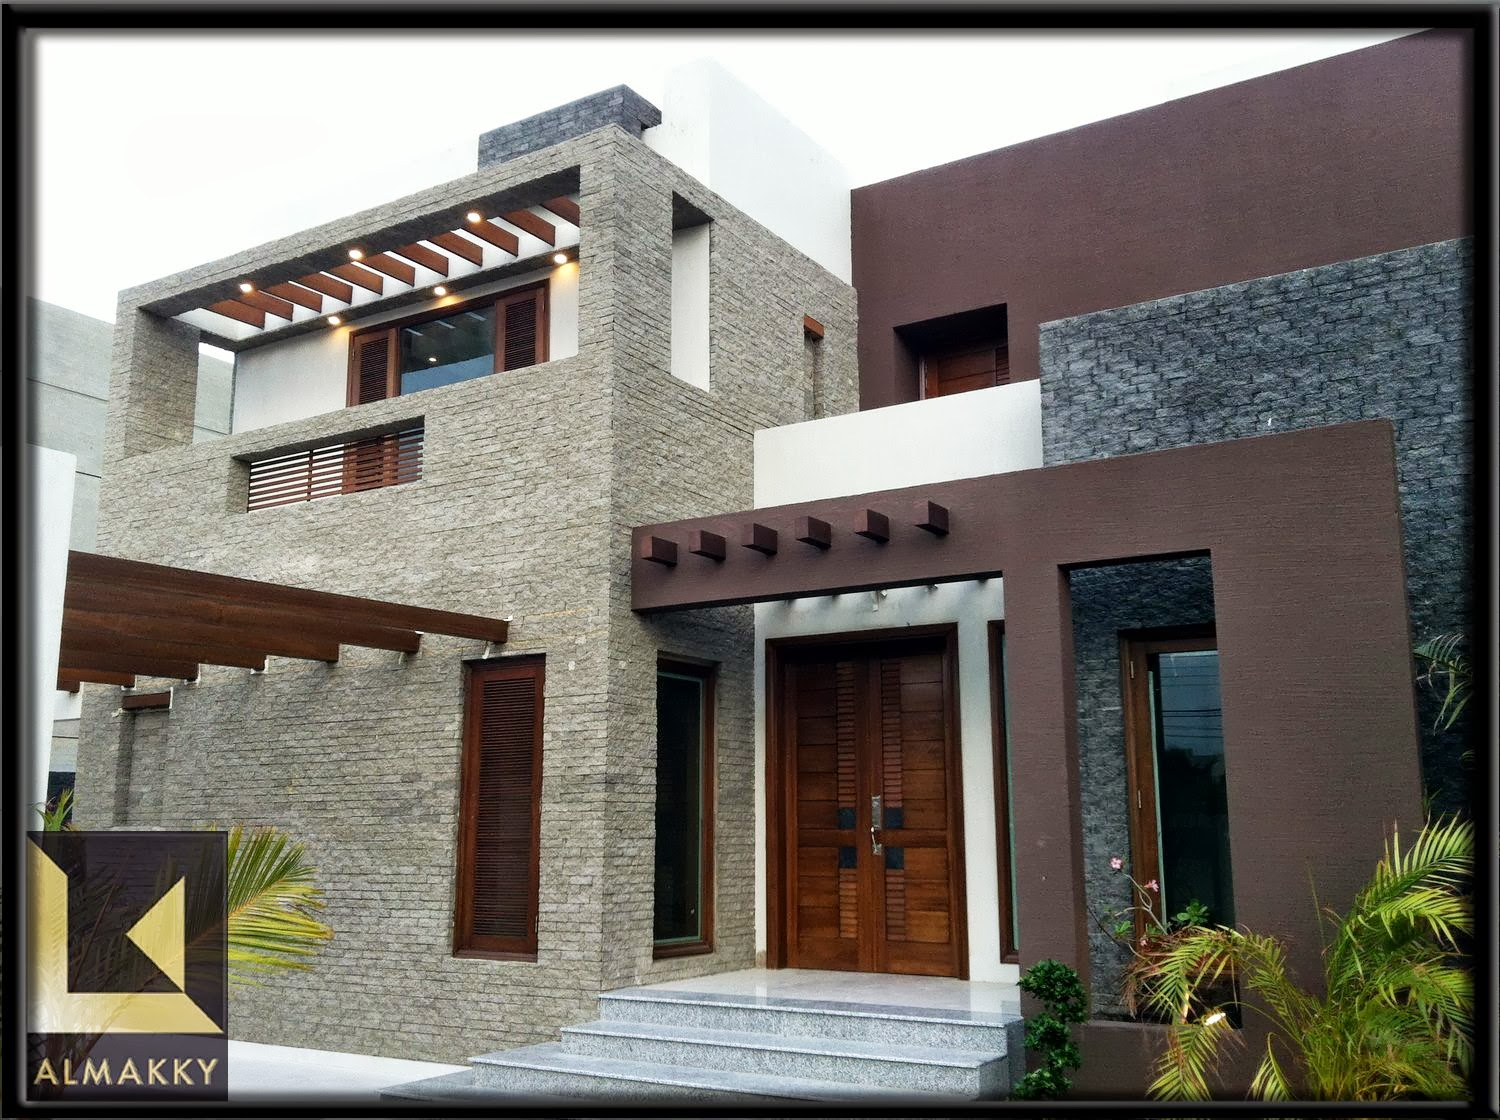 Almakky builders constructed modern contemporary home Contemporary home construction